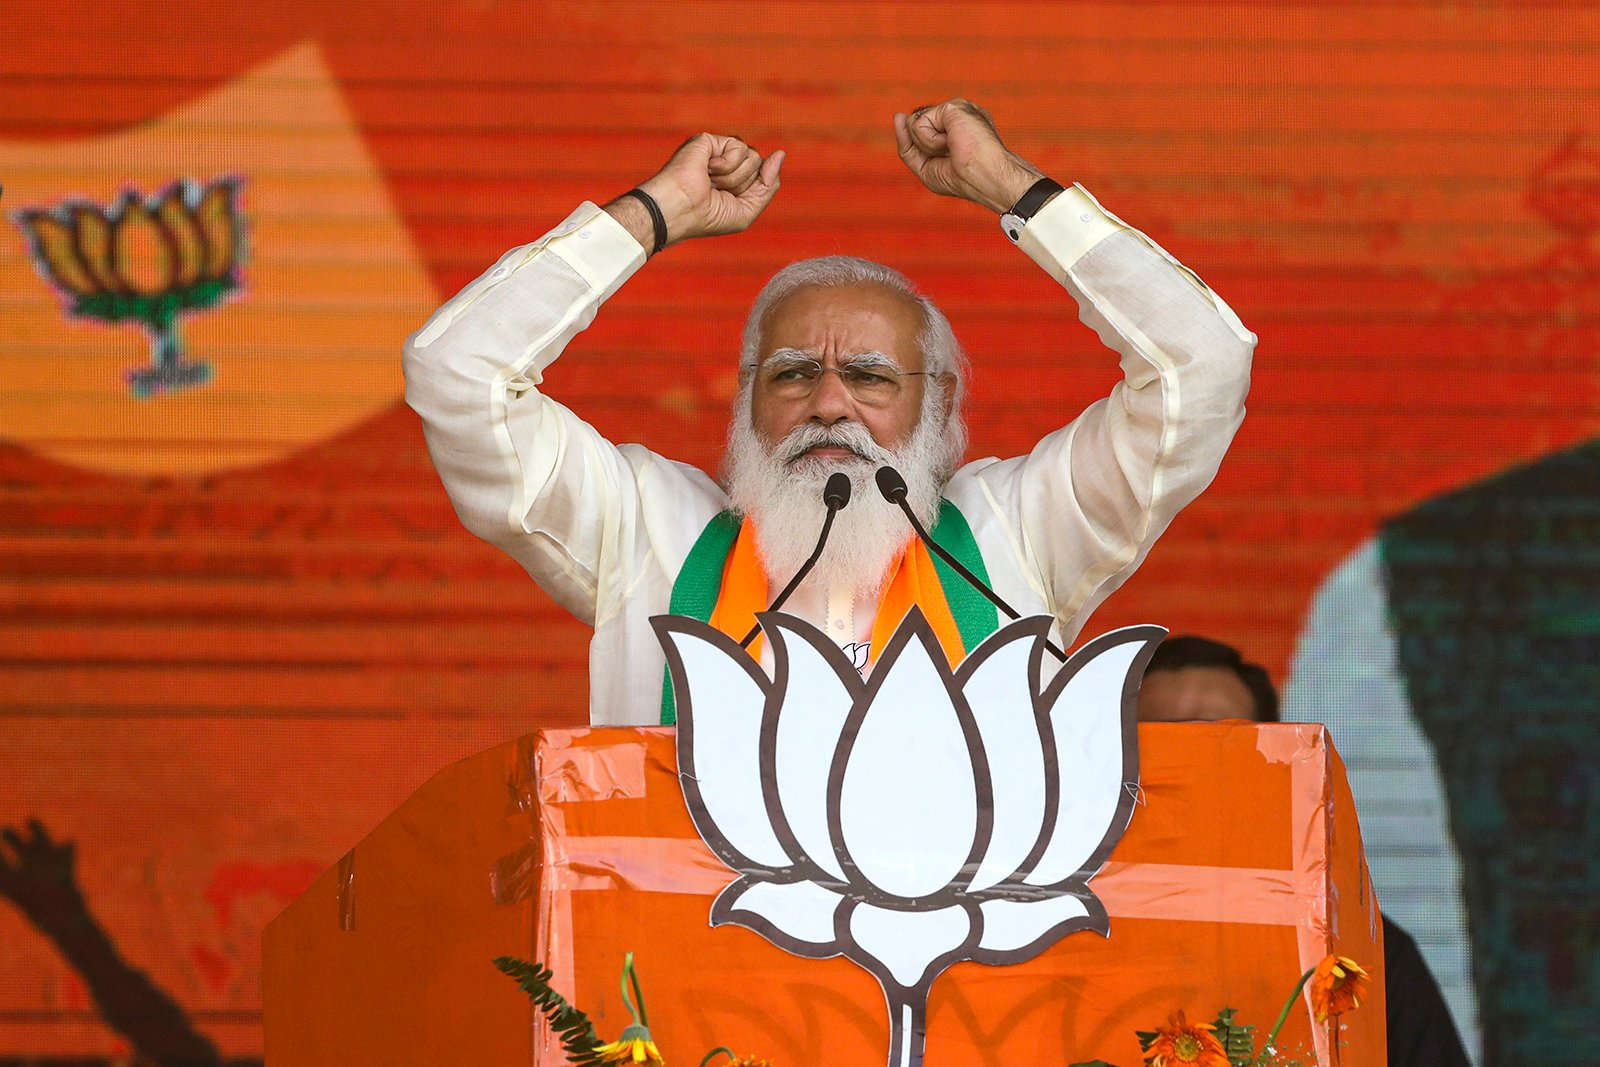 In this March 7, 2021, file photo, Indian Prime Minister Narendra Modi addresses a public rally ahead of West Bengal state elections in Kolkata, India. (AP Photo/Bikas Das, File)